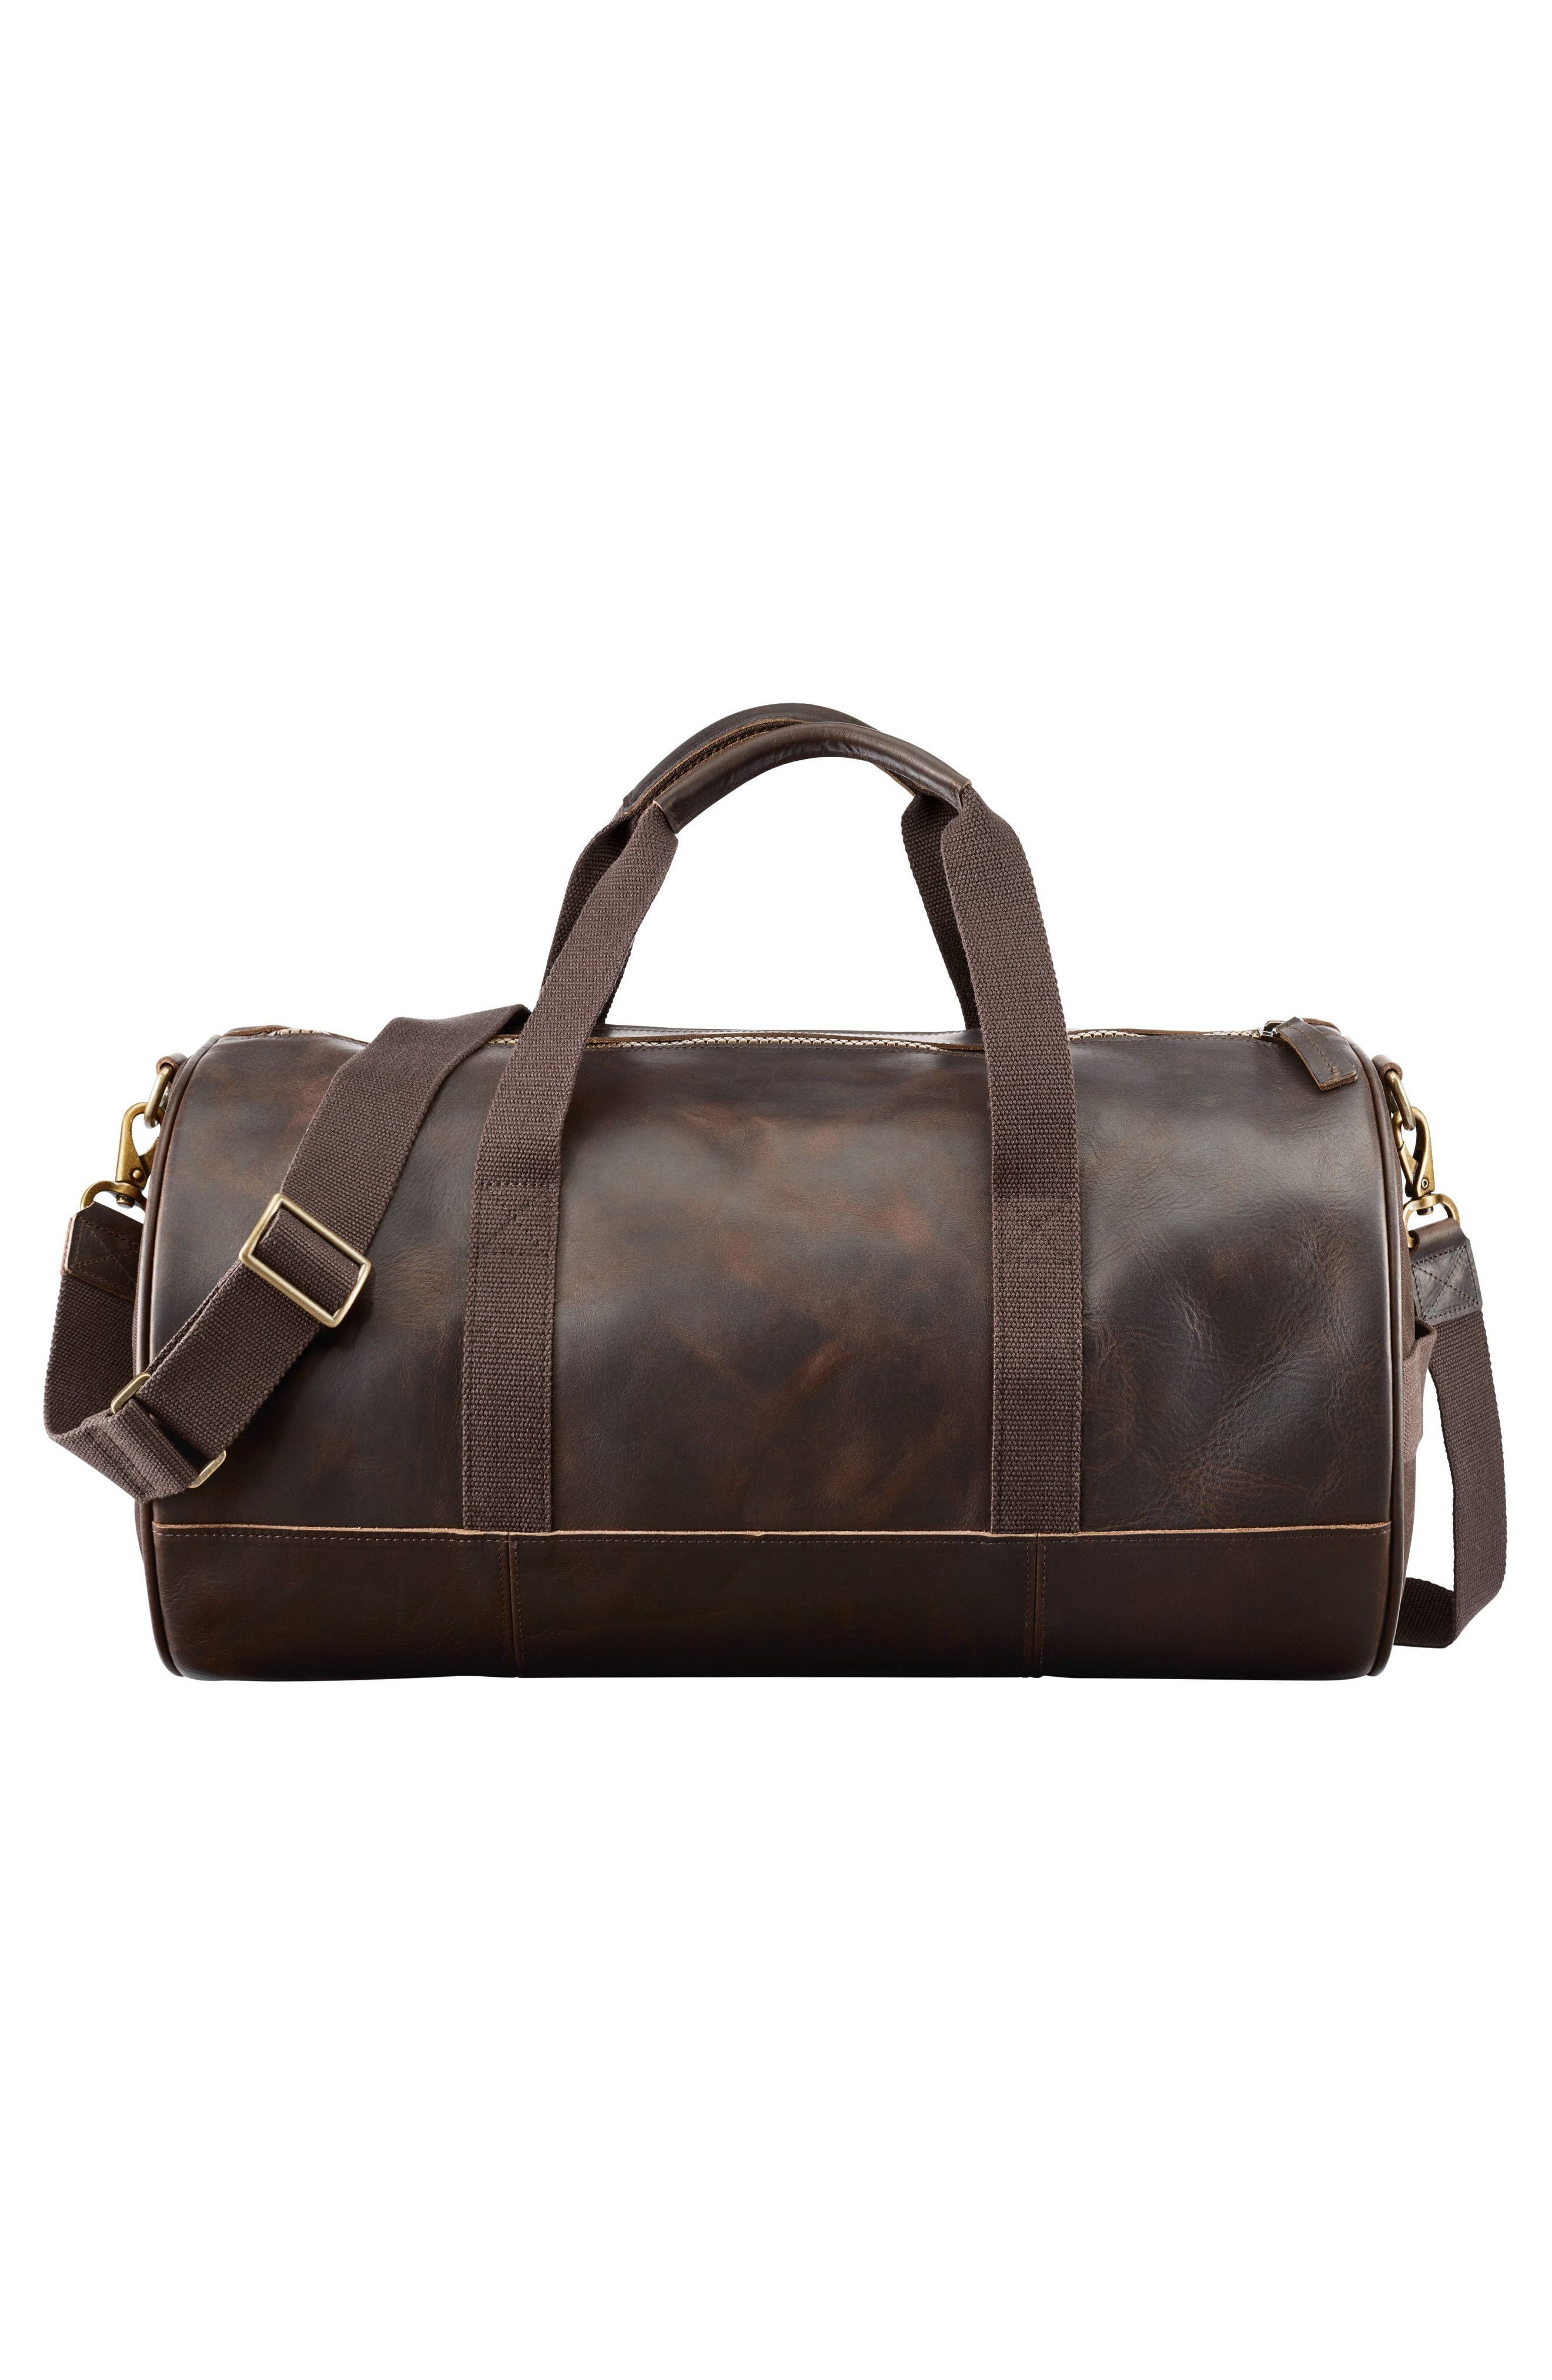 Tuckerman Leather Duffel,                             Alternate thumbnail 2, color,                             DARK BROWN